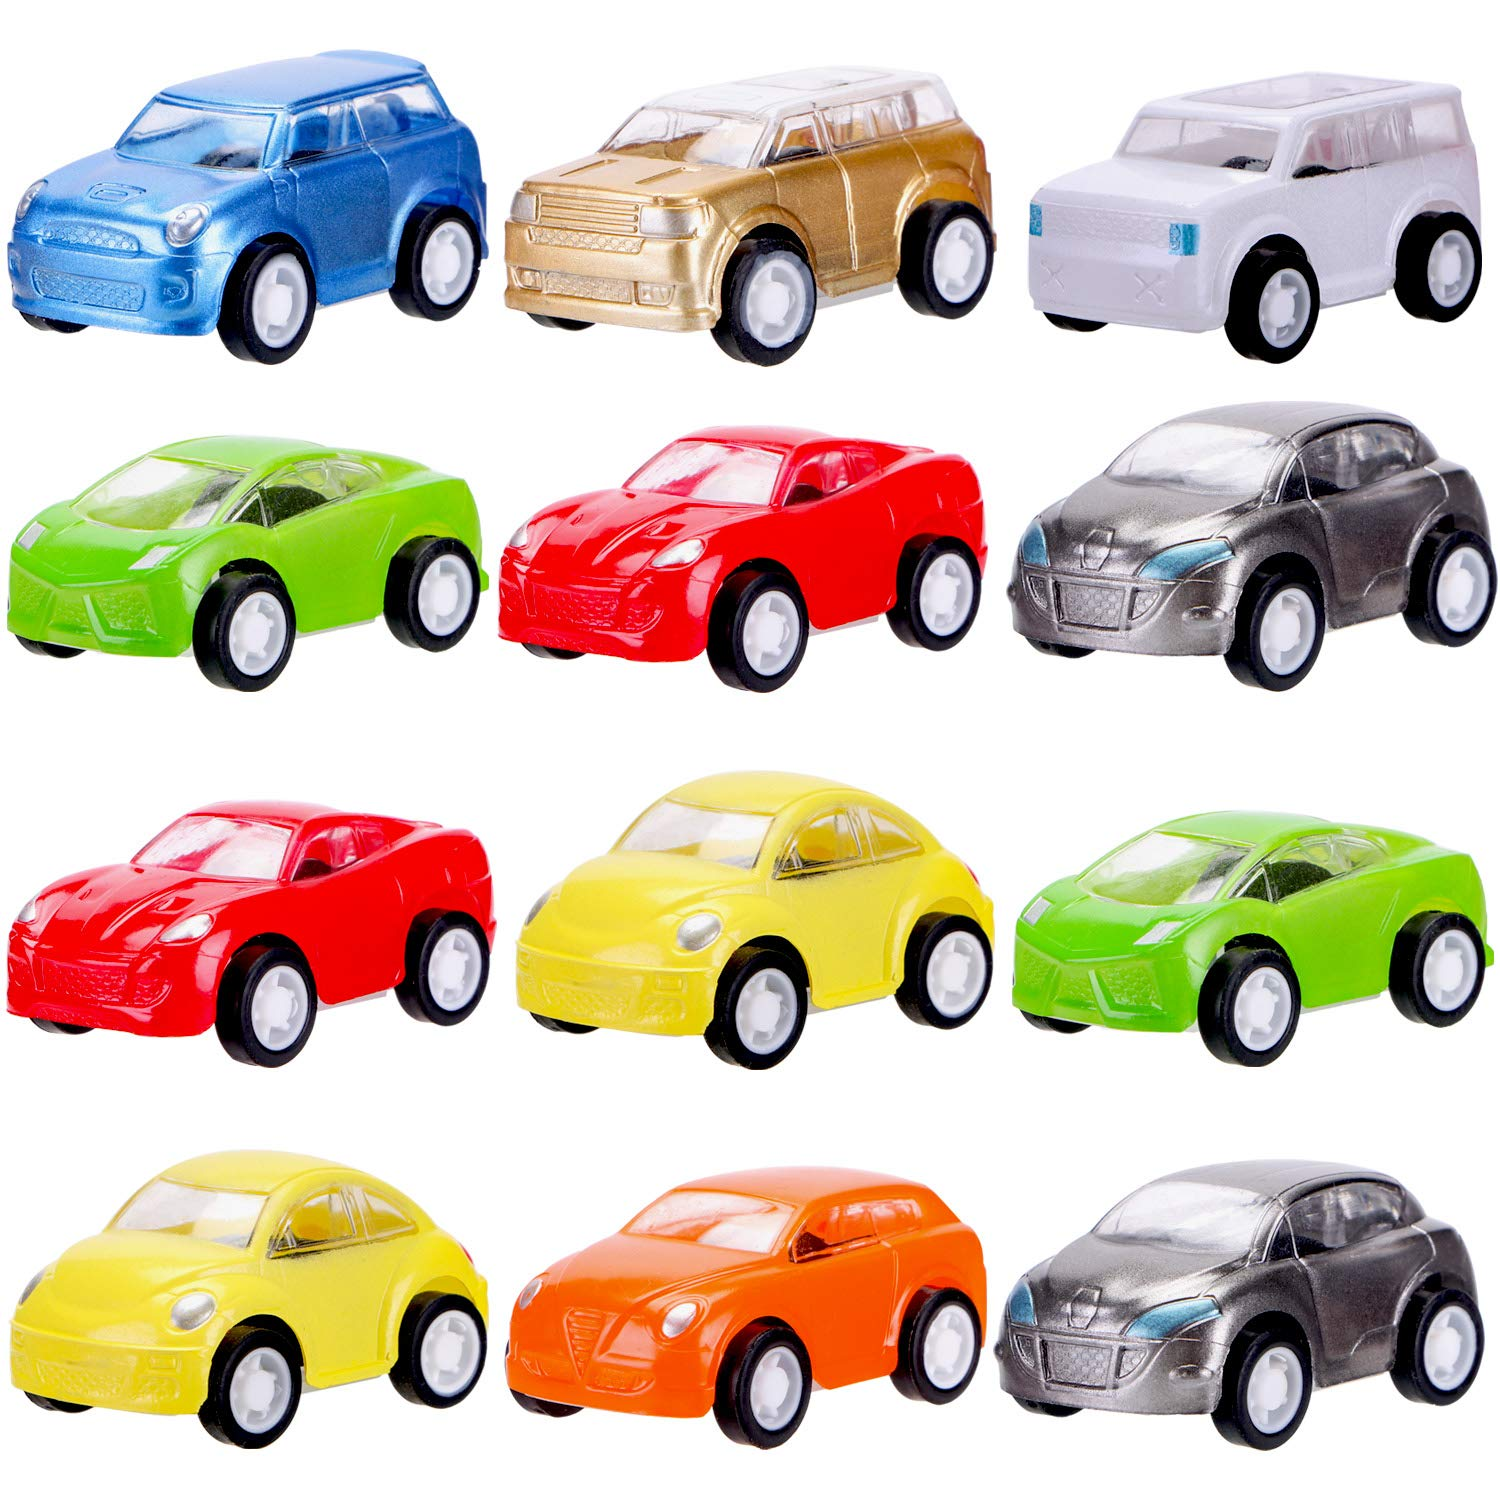 12 Pcs Filled Easter Eggs with Toy Cars,3.15''-Easter Pary Favor-Plastic Prefilled Eggs with Mini Pull Back Vehicles Toys for Toddlers by Sizonjoy (Image #2)